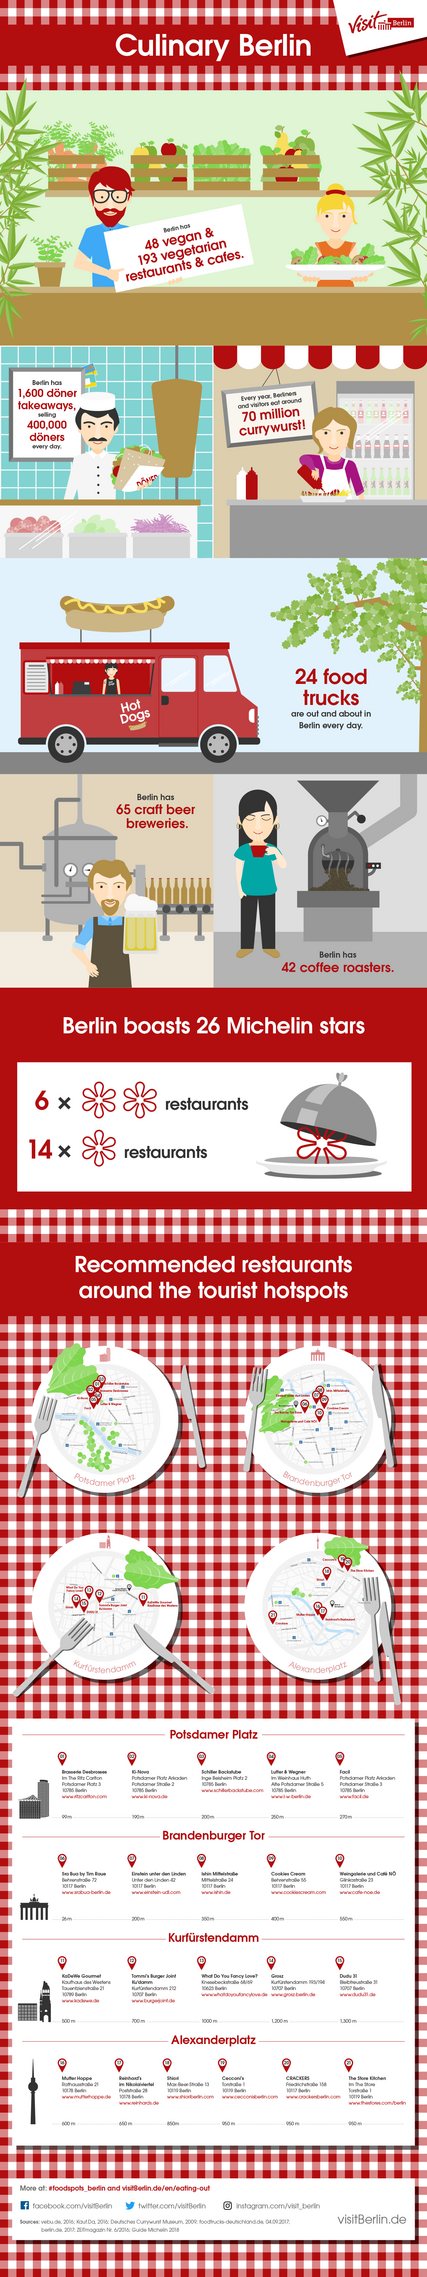 Culinary Berlin: Get to know all about Berlin's food scene.